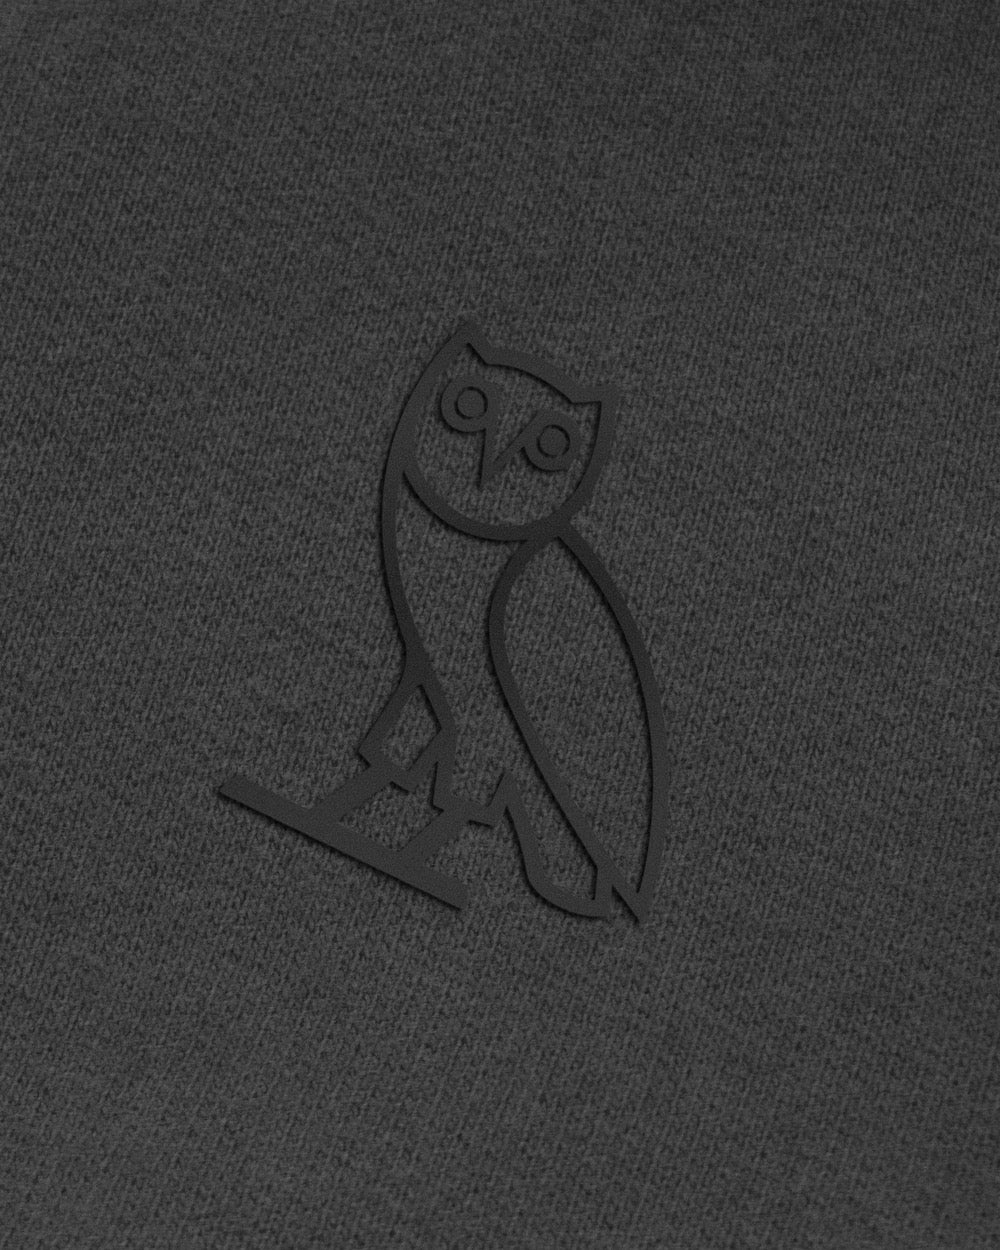 OWL LONGSLEEVE T-SHIRT - HEATHER CHARCOAL IMAGE #3